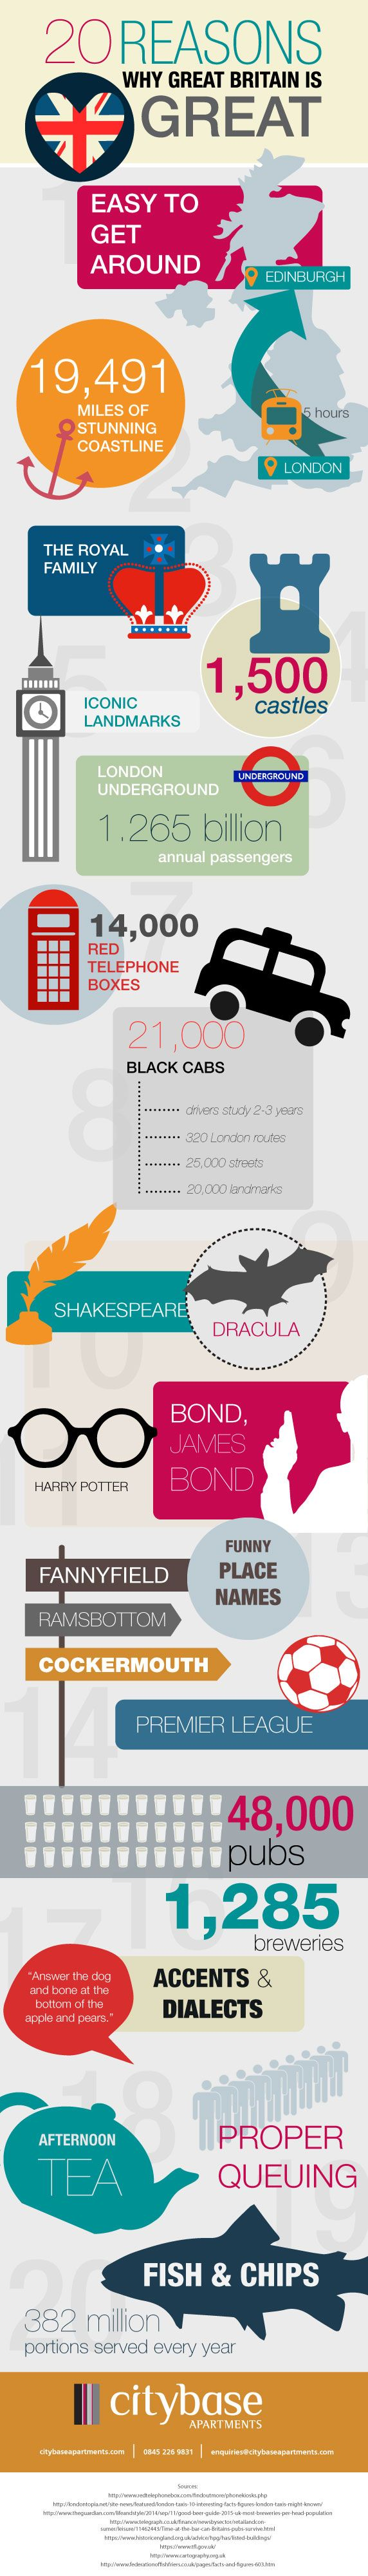 20 Reasons Why Britain is Great #infographic #Travel #Britain